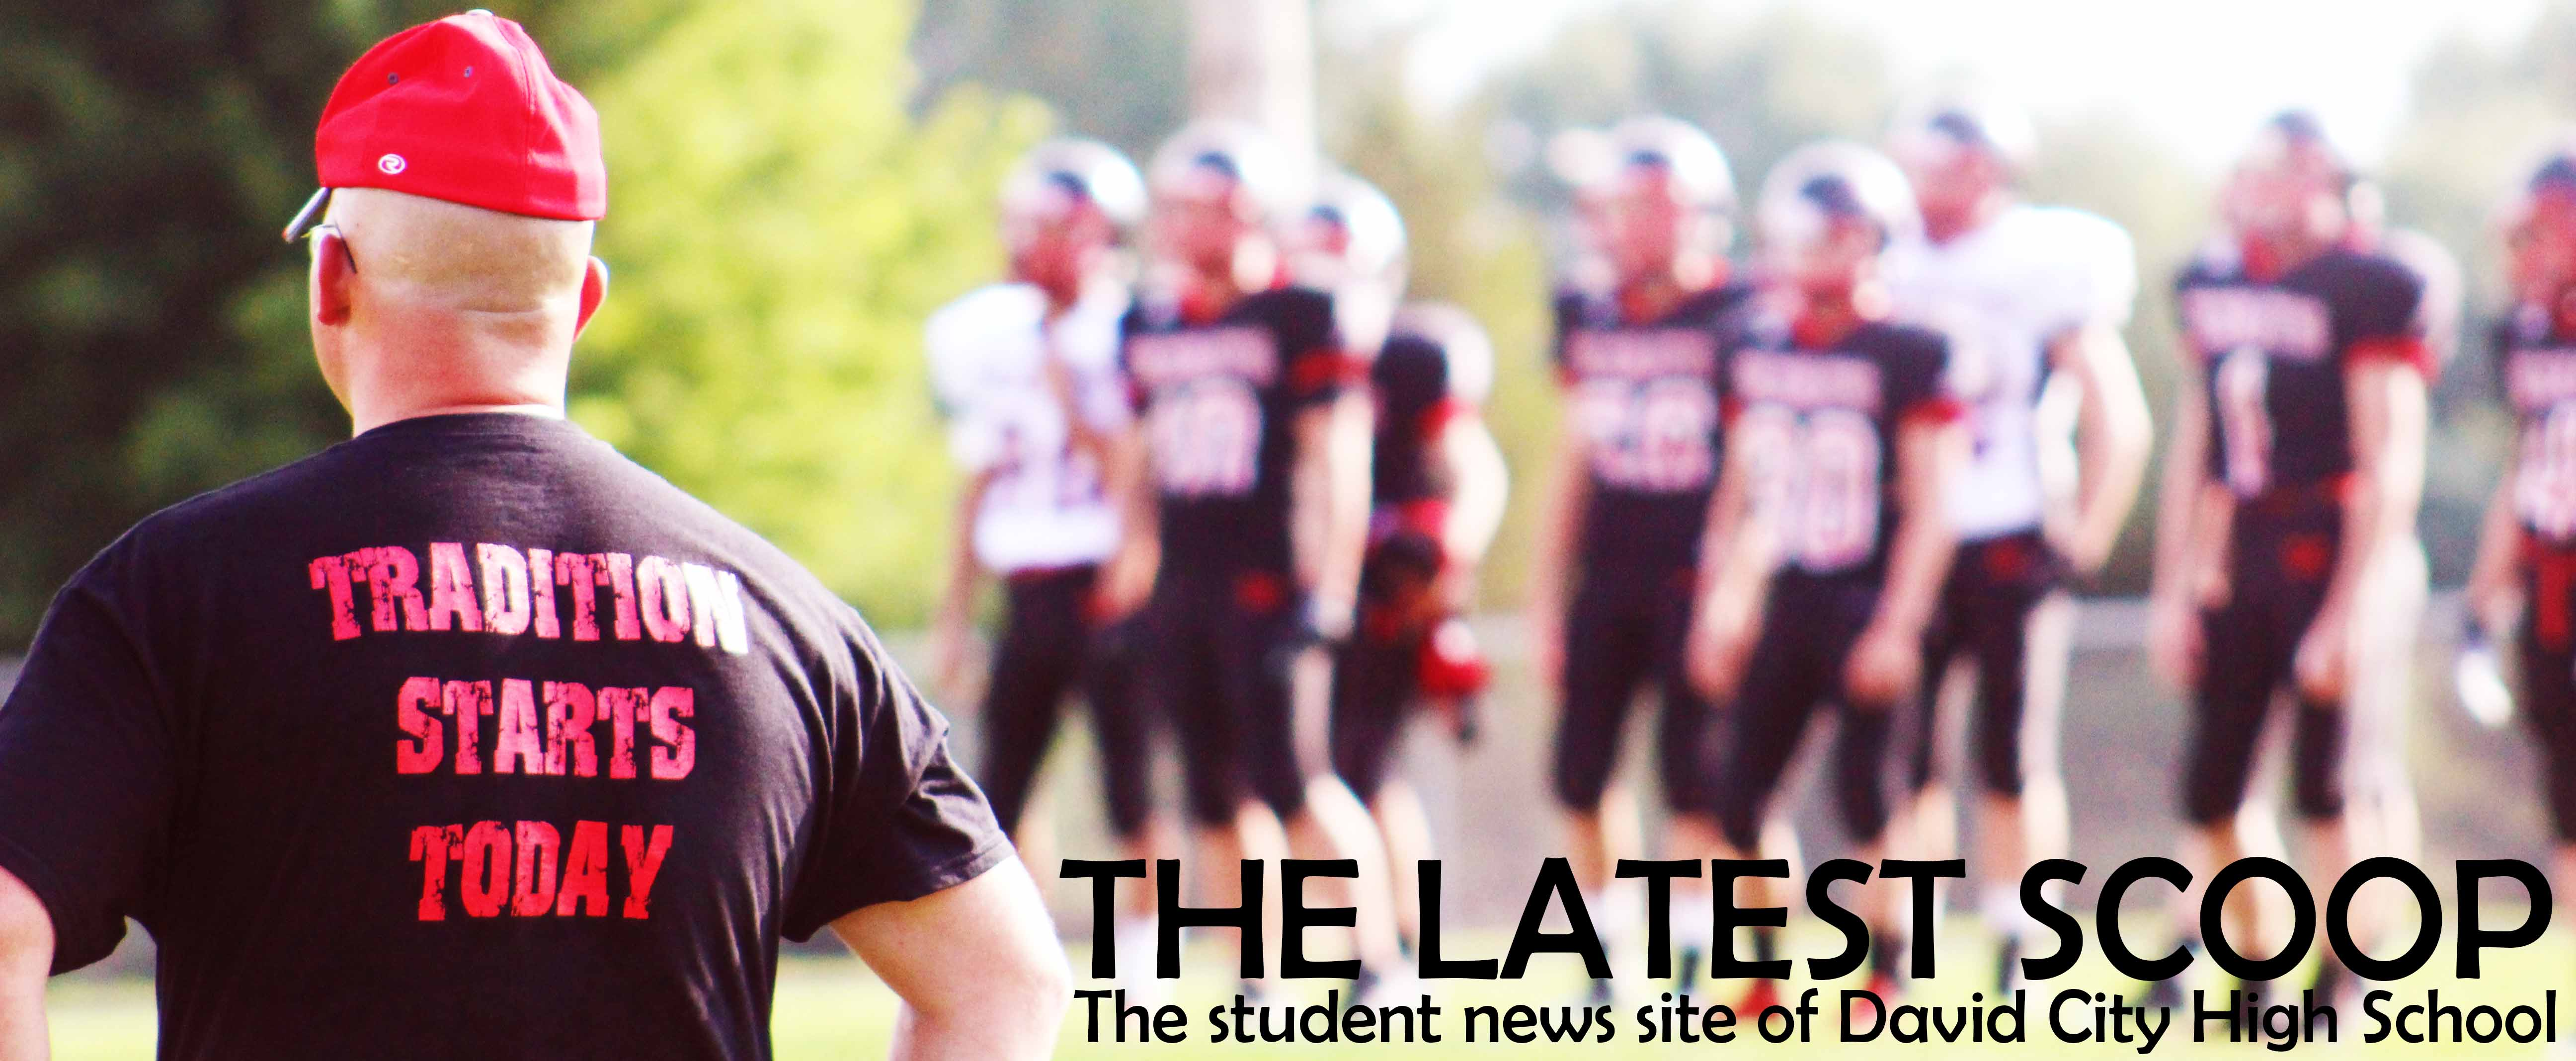 The student news site of David City High School